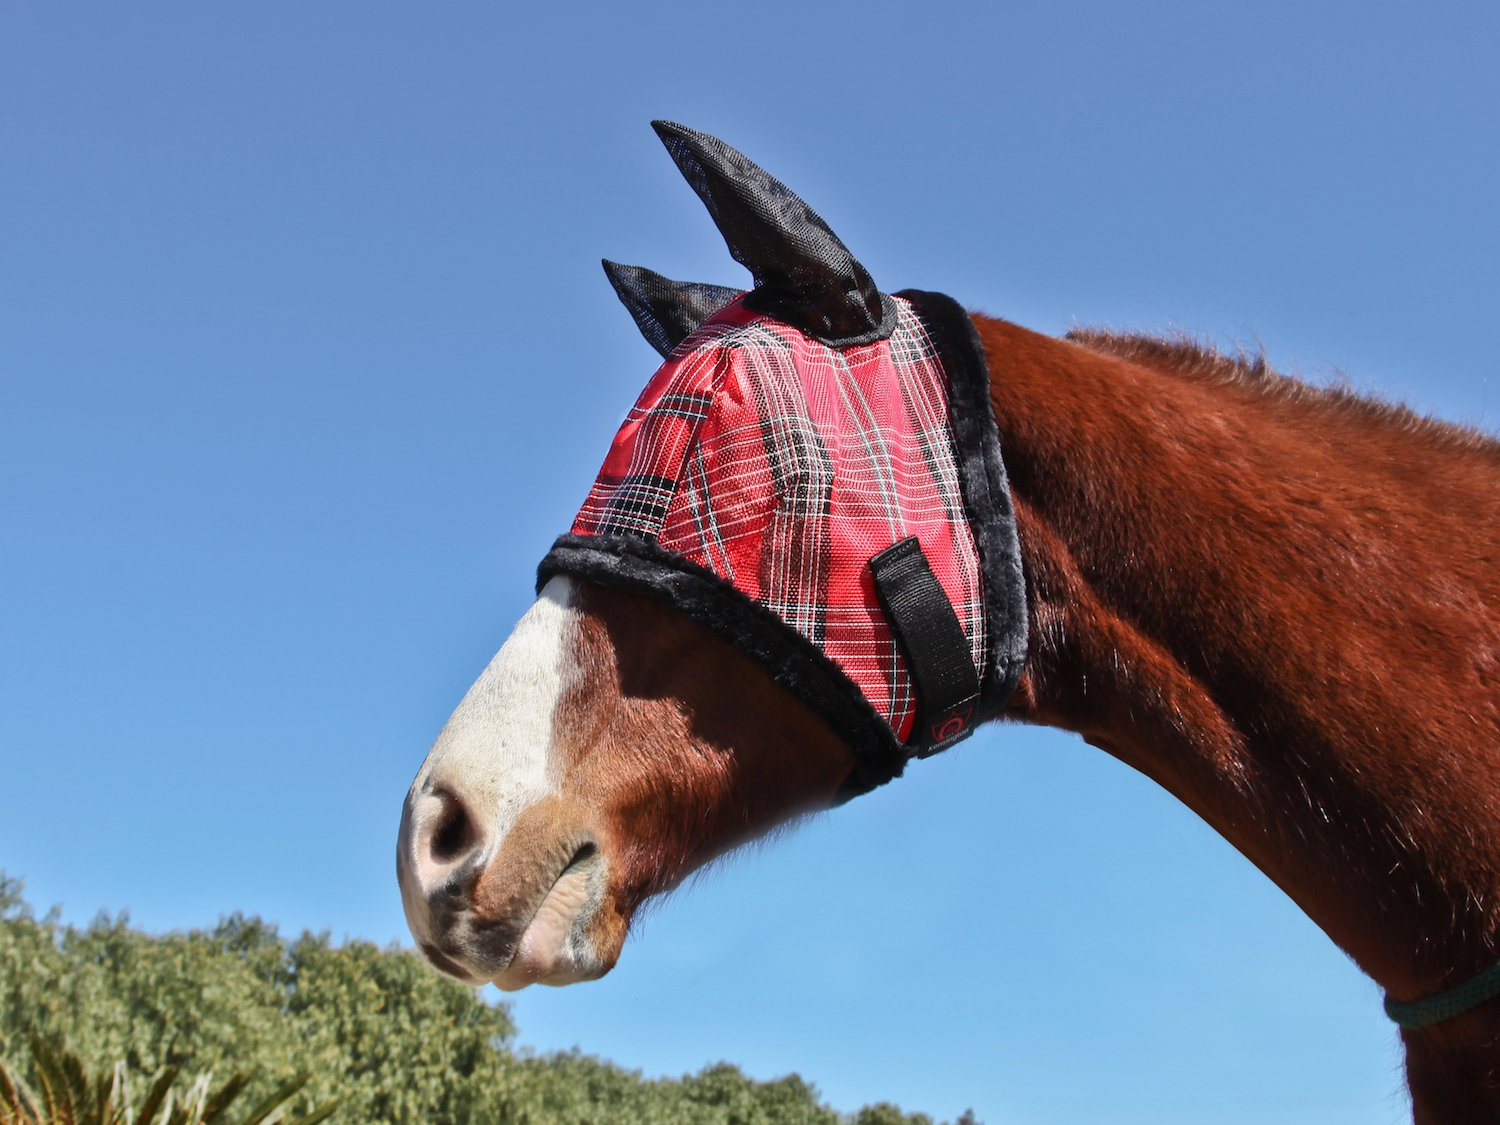 Deluxe Red Plaid L Deluxe Red Plaid L Kensington KPP Fly Mask with Fleece Trim with Ears